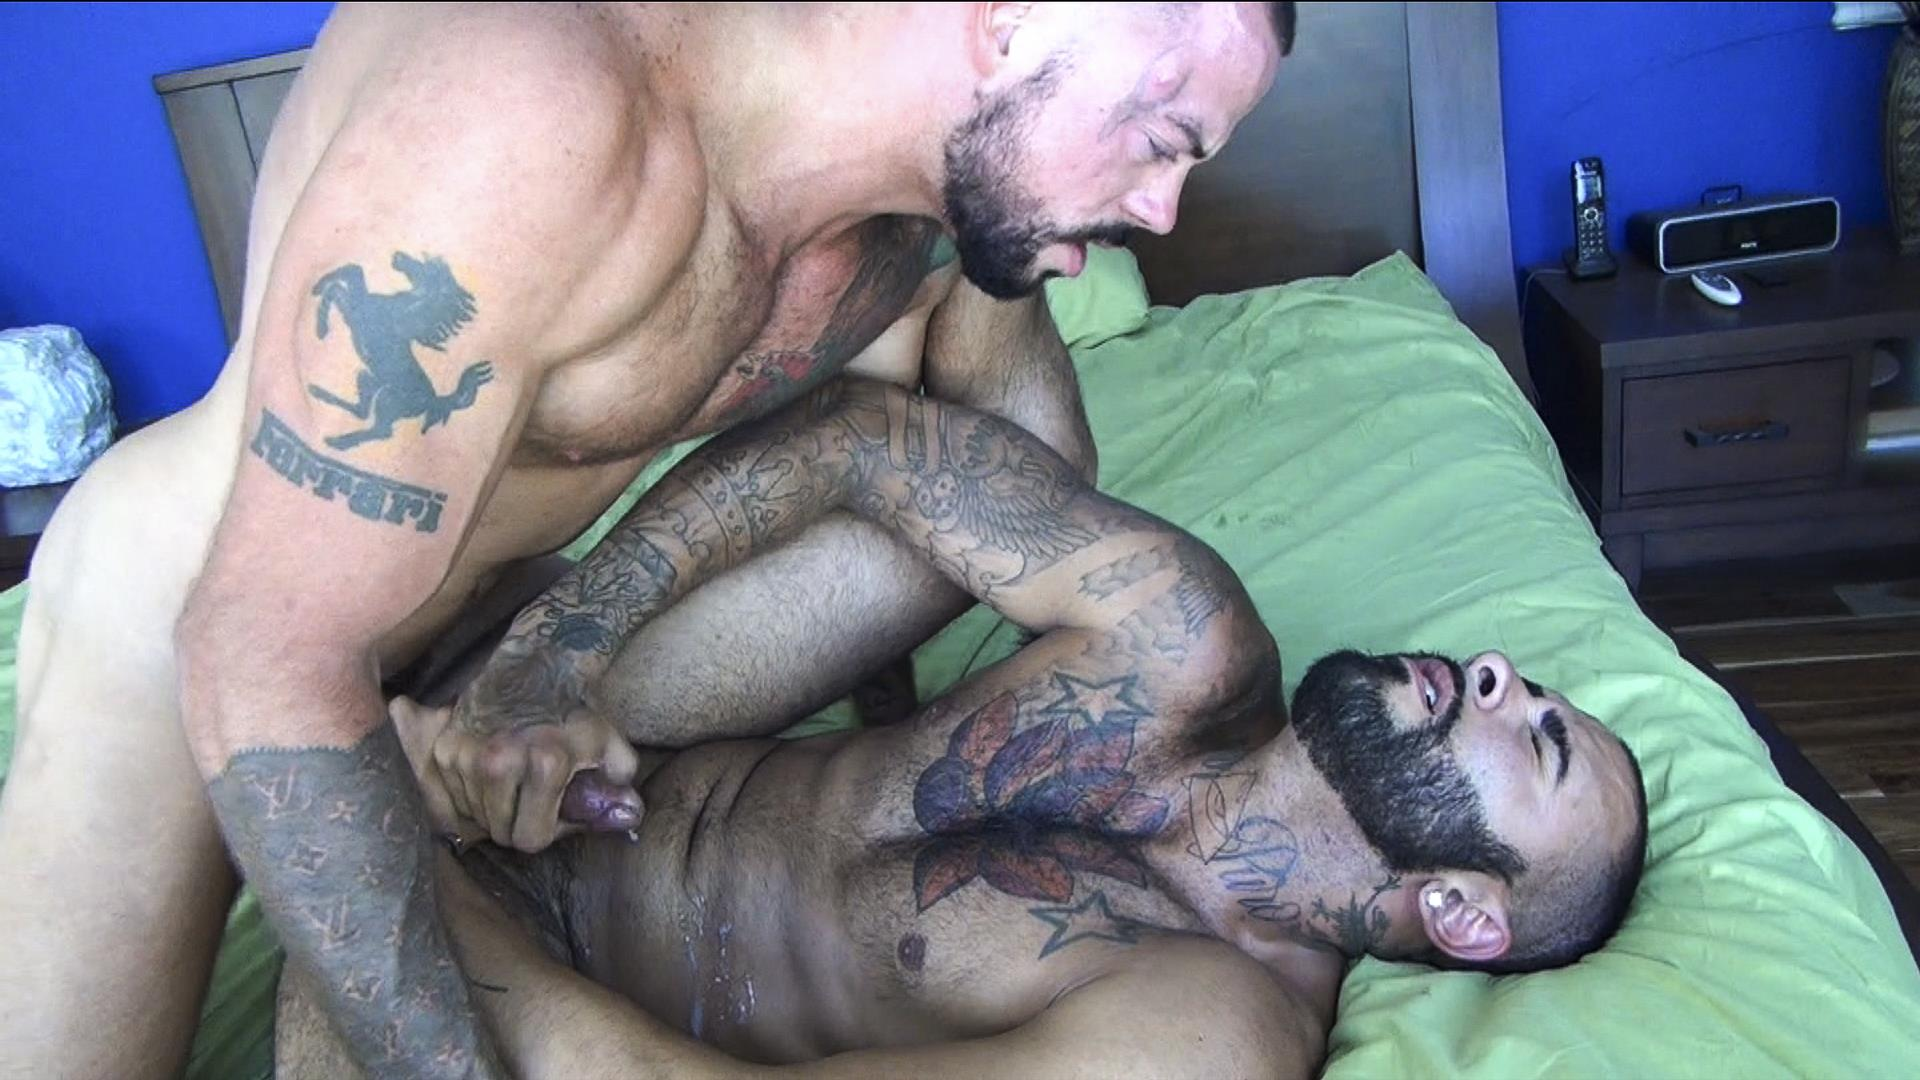 Raw Fuck Club Rikk York and Sean Duran Hairy Muscle Bareback Amateur Gay Porn 2 Hairy Muscle Studs & Real Life Boyfriends Sean Duran & Rikk York Bareback